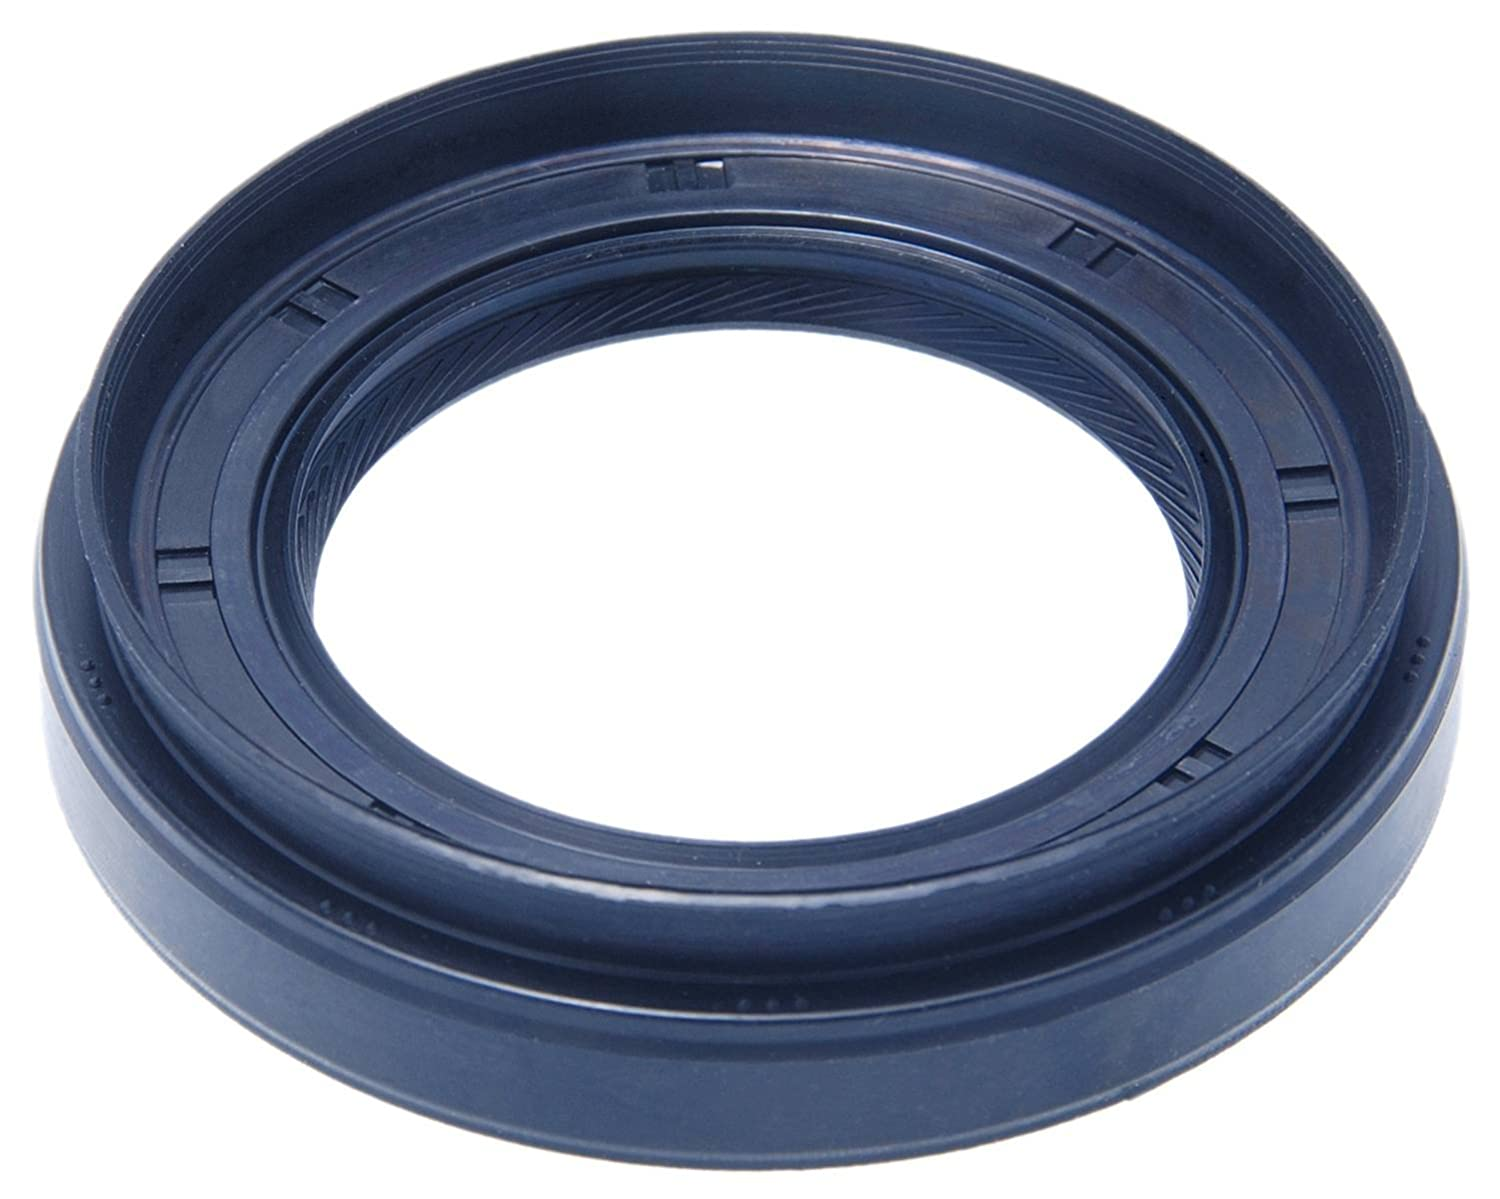 90311-50023 / 9031150023 - Oil Seal (Axle Case) (50X80X11, 2X17, 4) For Toyota Febest